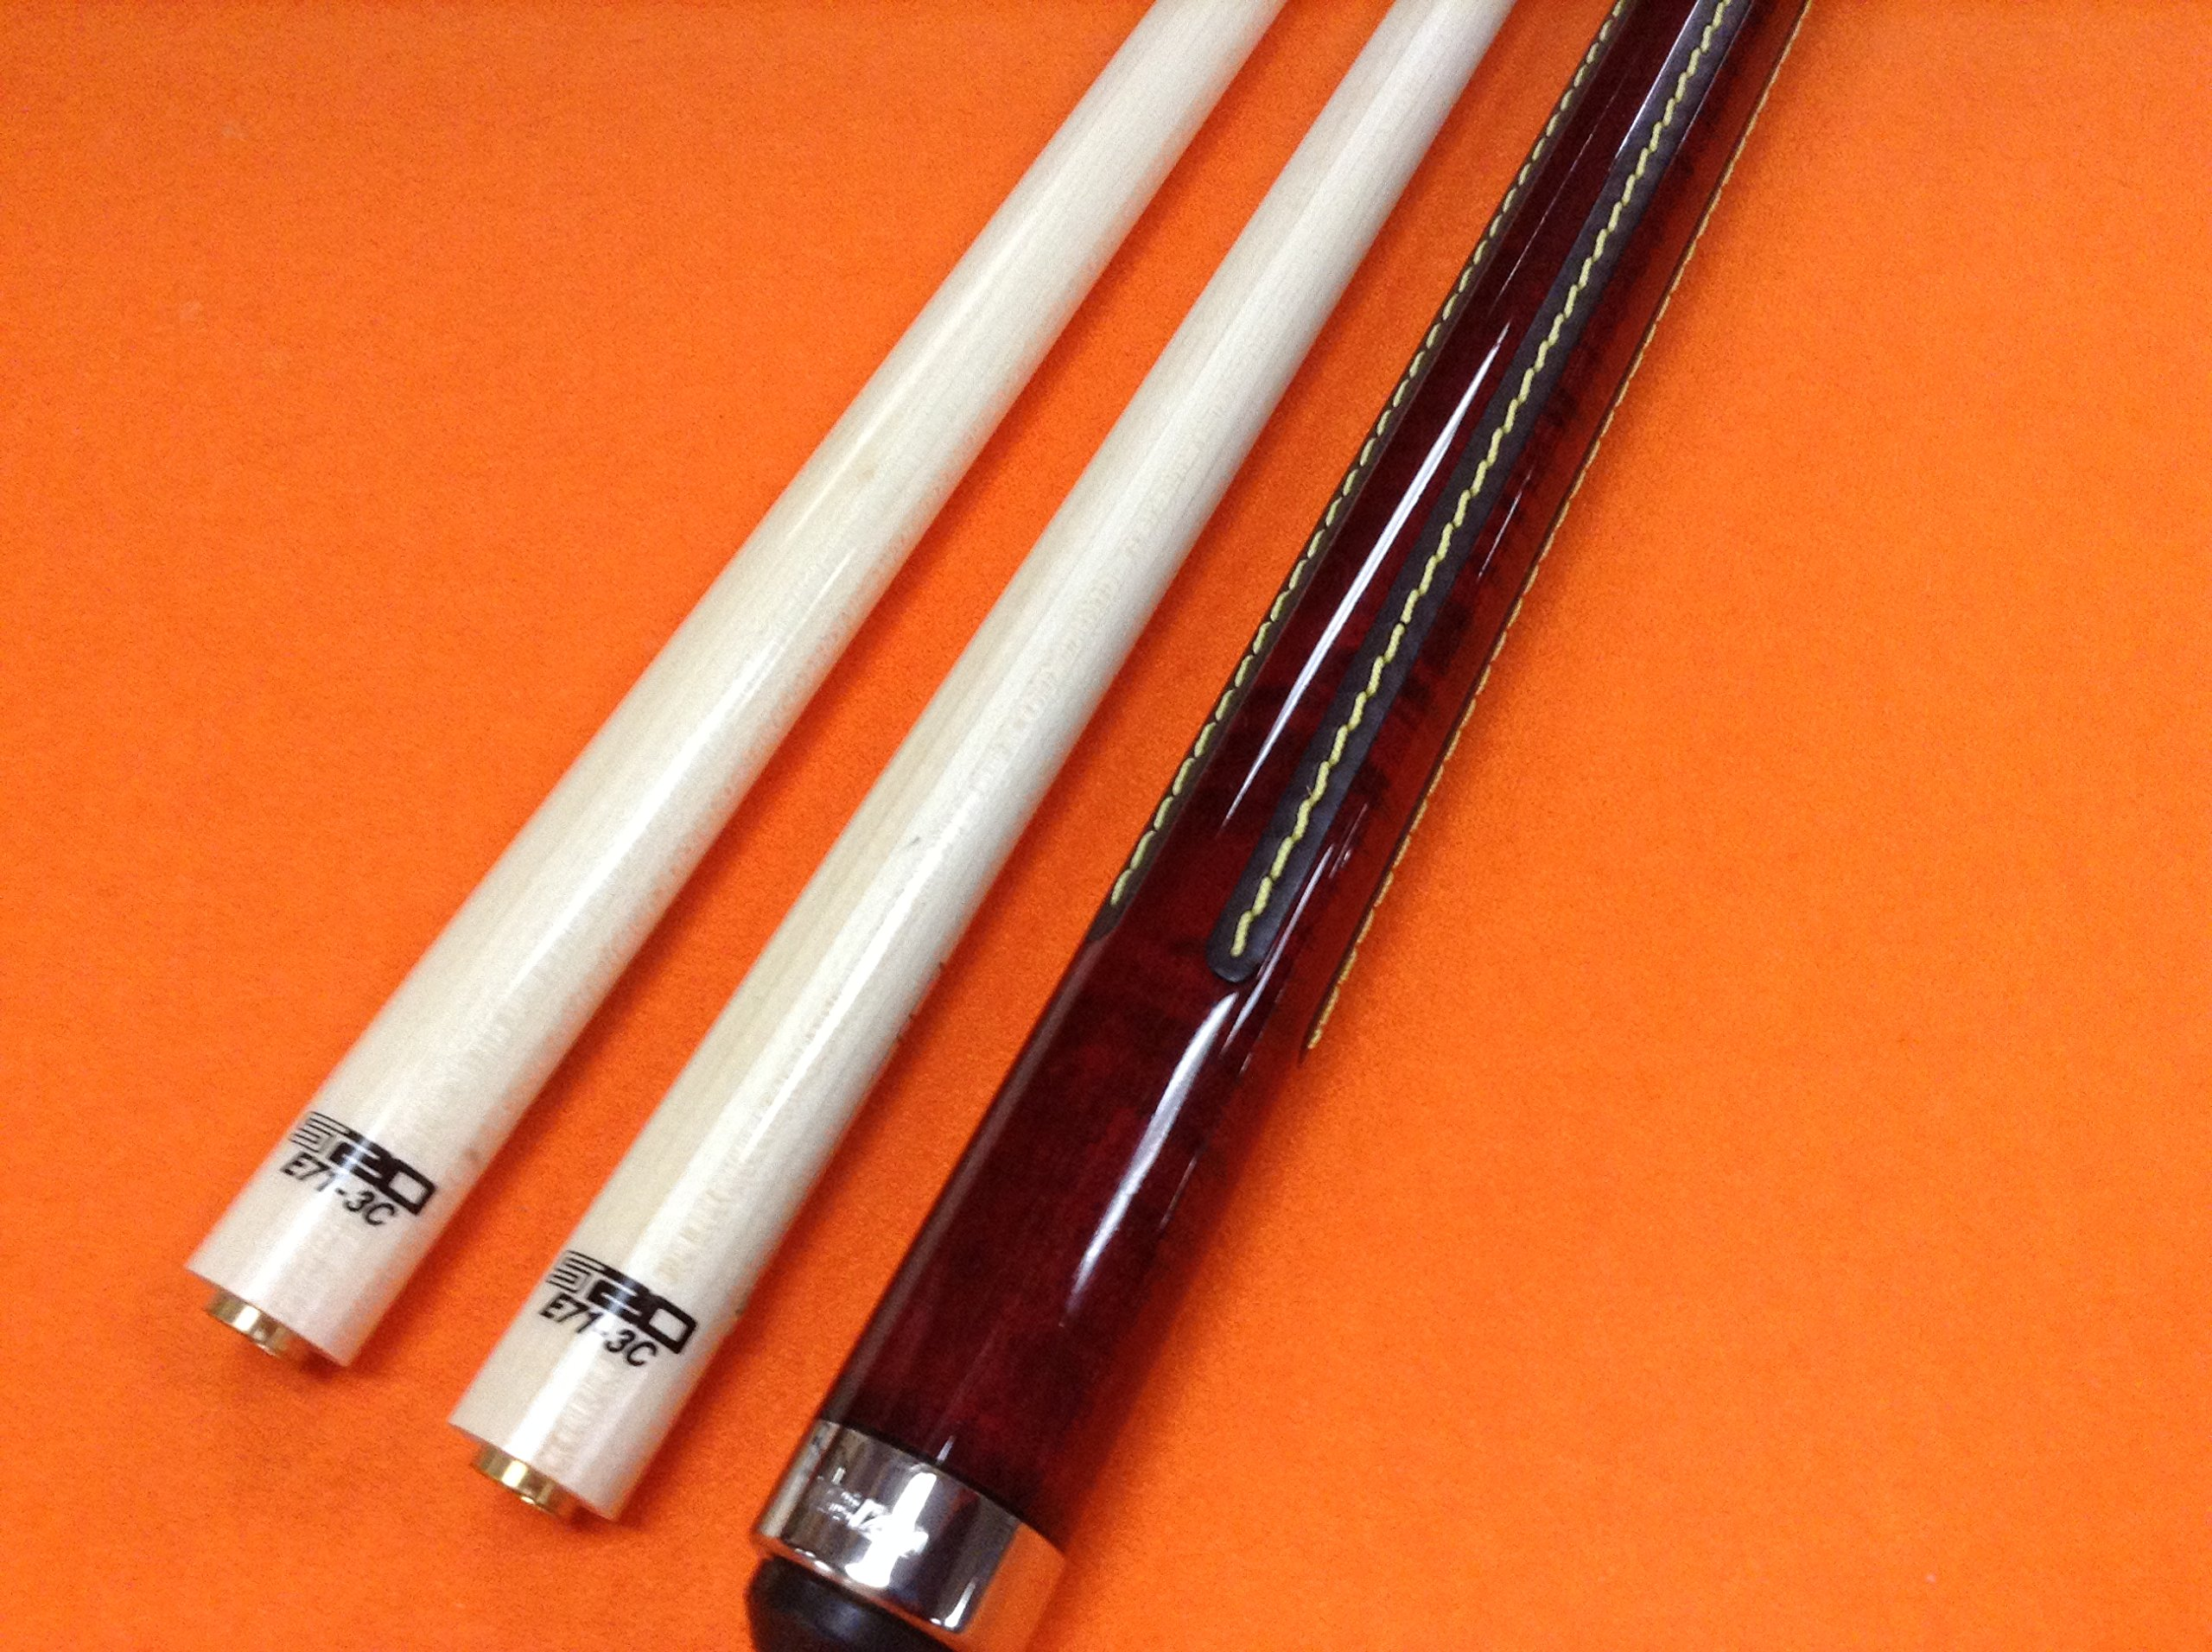 LONGONI CAROM CUE CREMONA GRANATA WITH TWO S20 SHAFTS (limited edition)